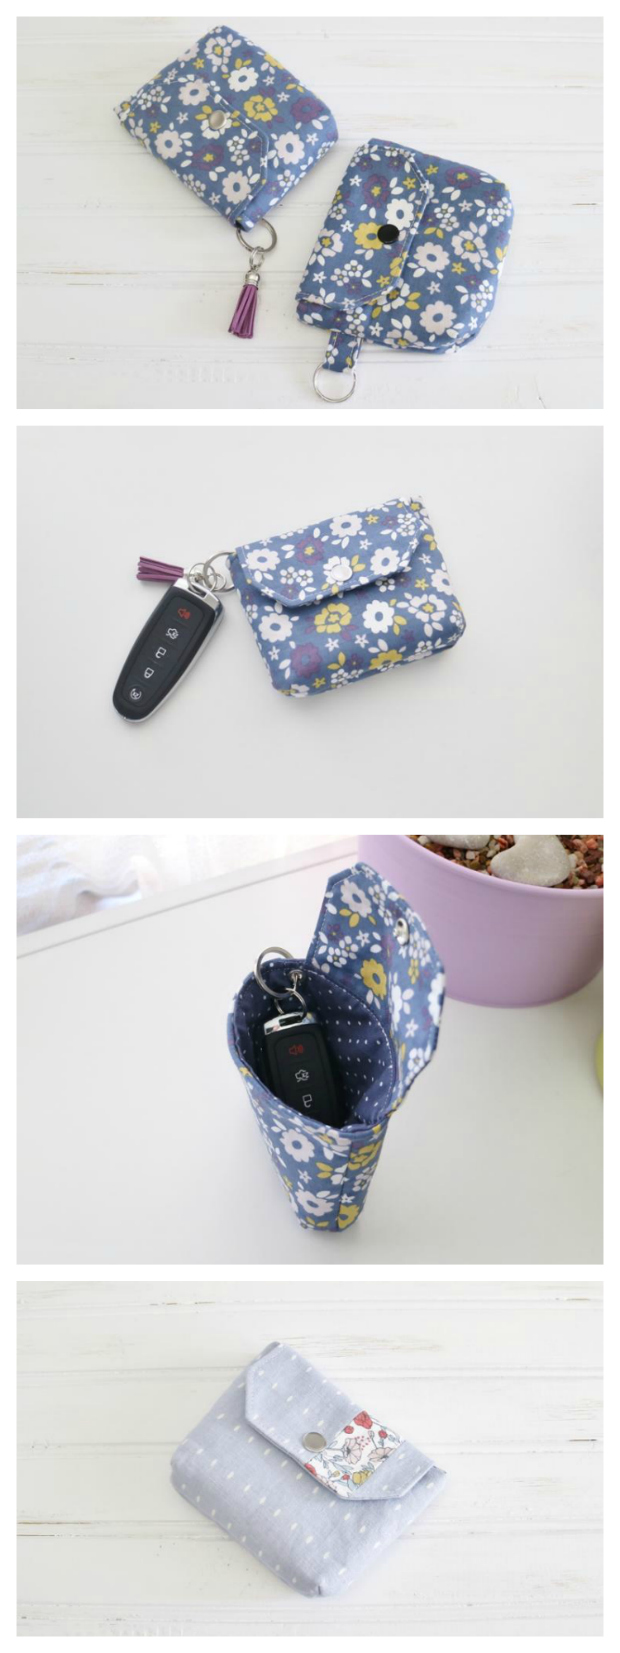 If you want to work on a very simple and quick task then here is a FREE pdf pattern for making a small coin purse called the Flappy Coin Purse. The Flappy Coin Purse with its key ring has been designed to hold those few essentials for the girl on the go. You can slip inside a few cards, coins/bills and maybe your favorite lipstick and it's small enough to fit in a coat pocket. This is a great stash busting project and perfect for a last minute gift.